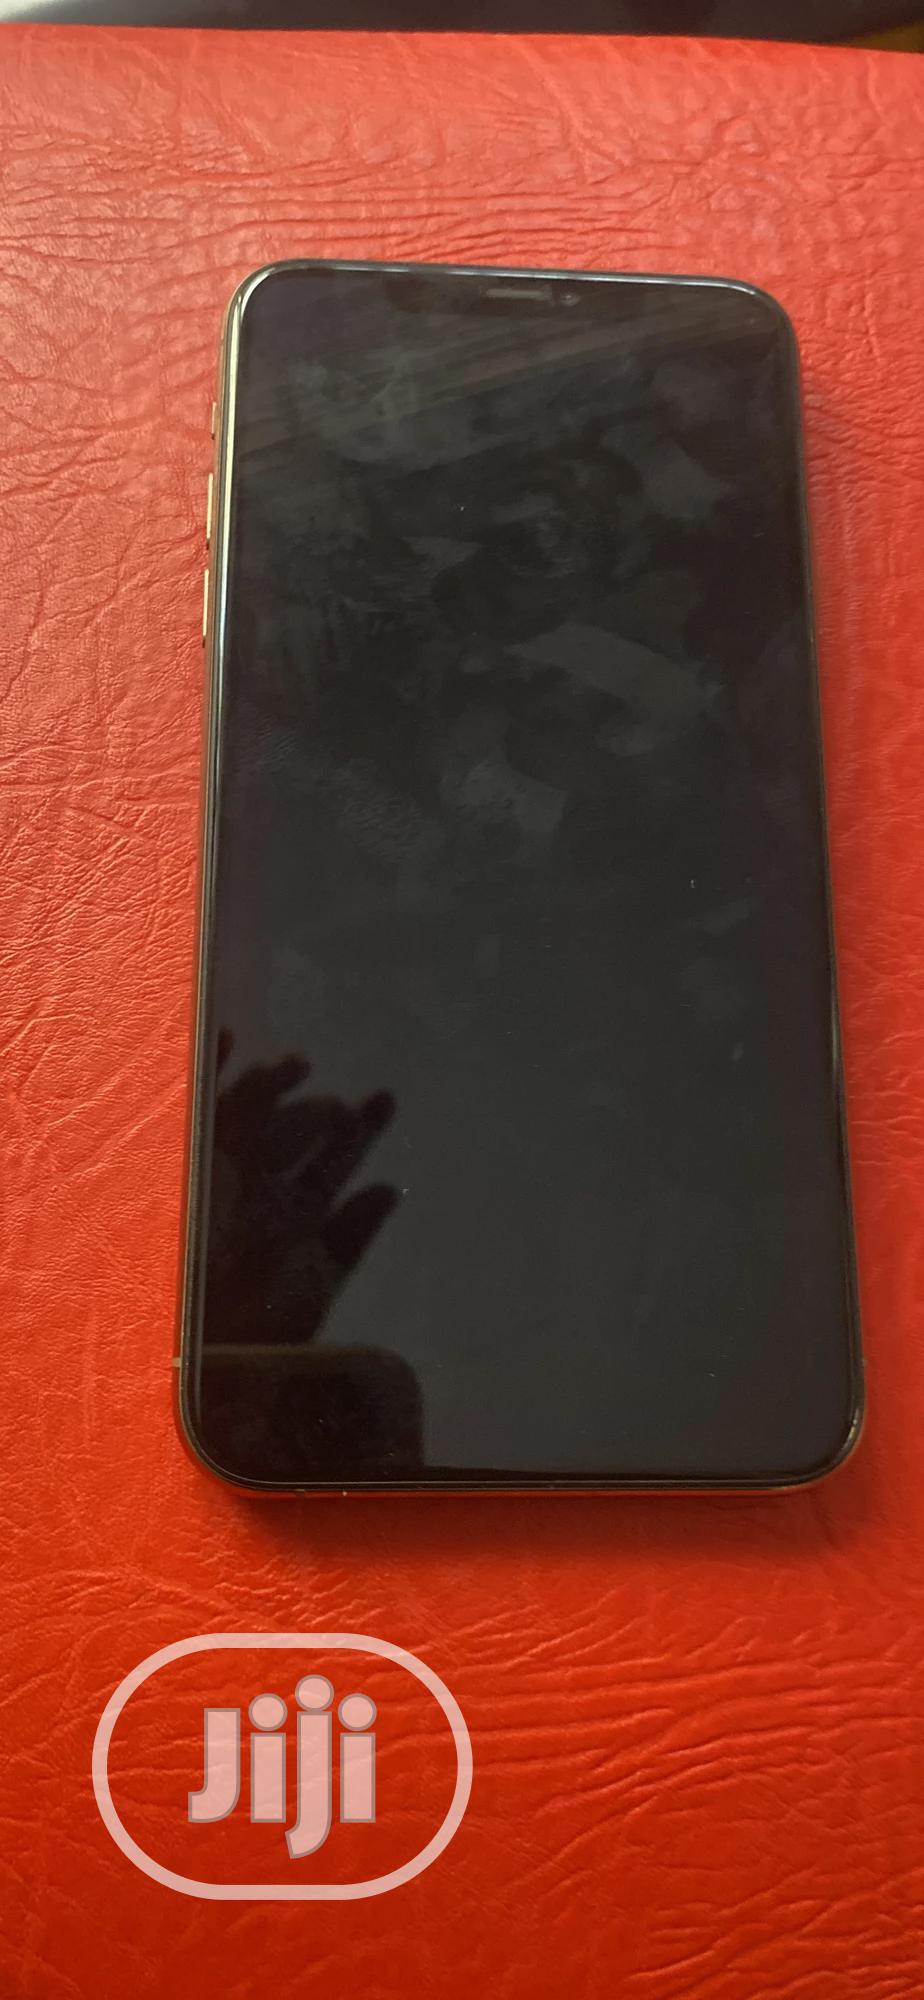 Apple iPhone 11 Pro Max 256 GB Gold | Mobile Phones for sale in Ikeja, Lagos State, Nigeria